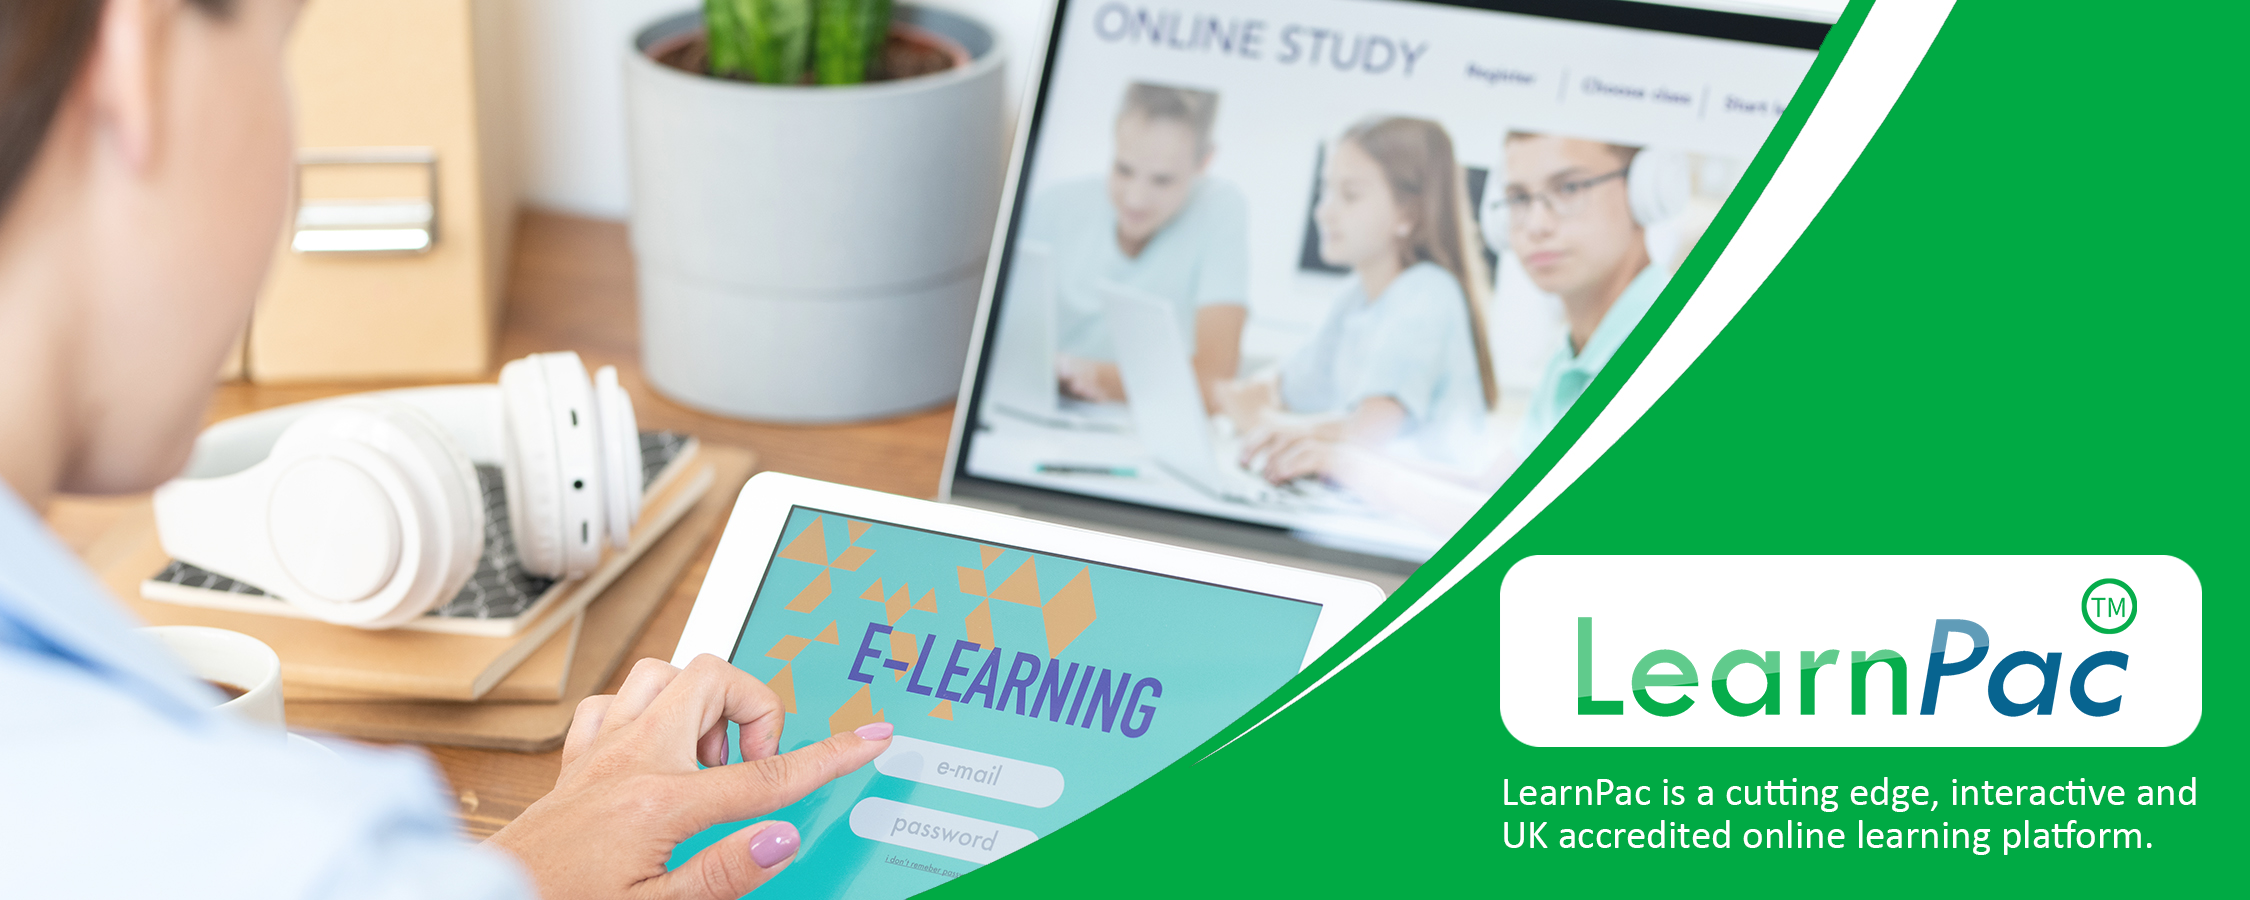 CSTF Resuscitation – Adult Basic Life Support - Online Learning Courses - E-Learning Courses - LearnPac Systems UK -